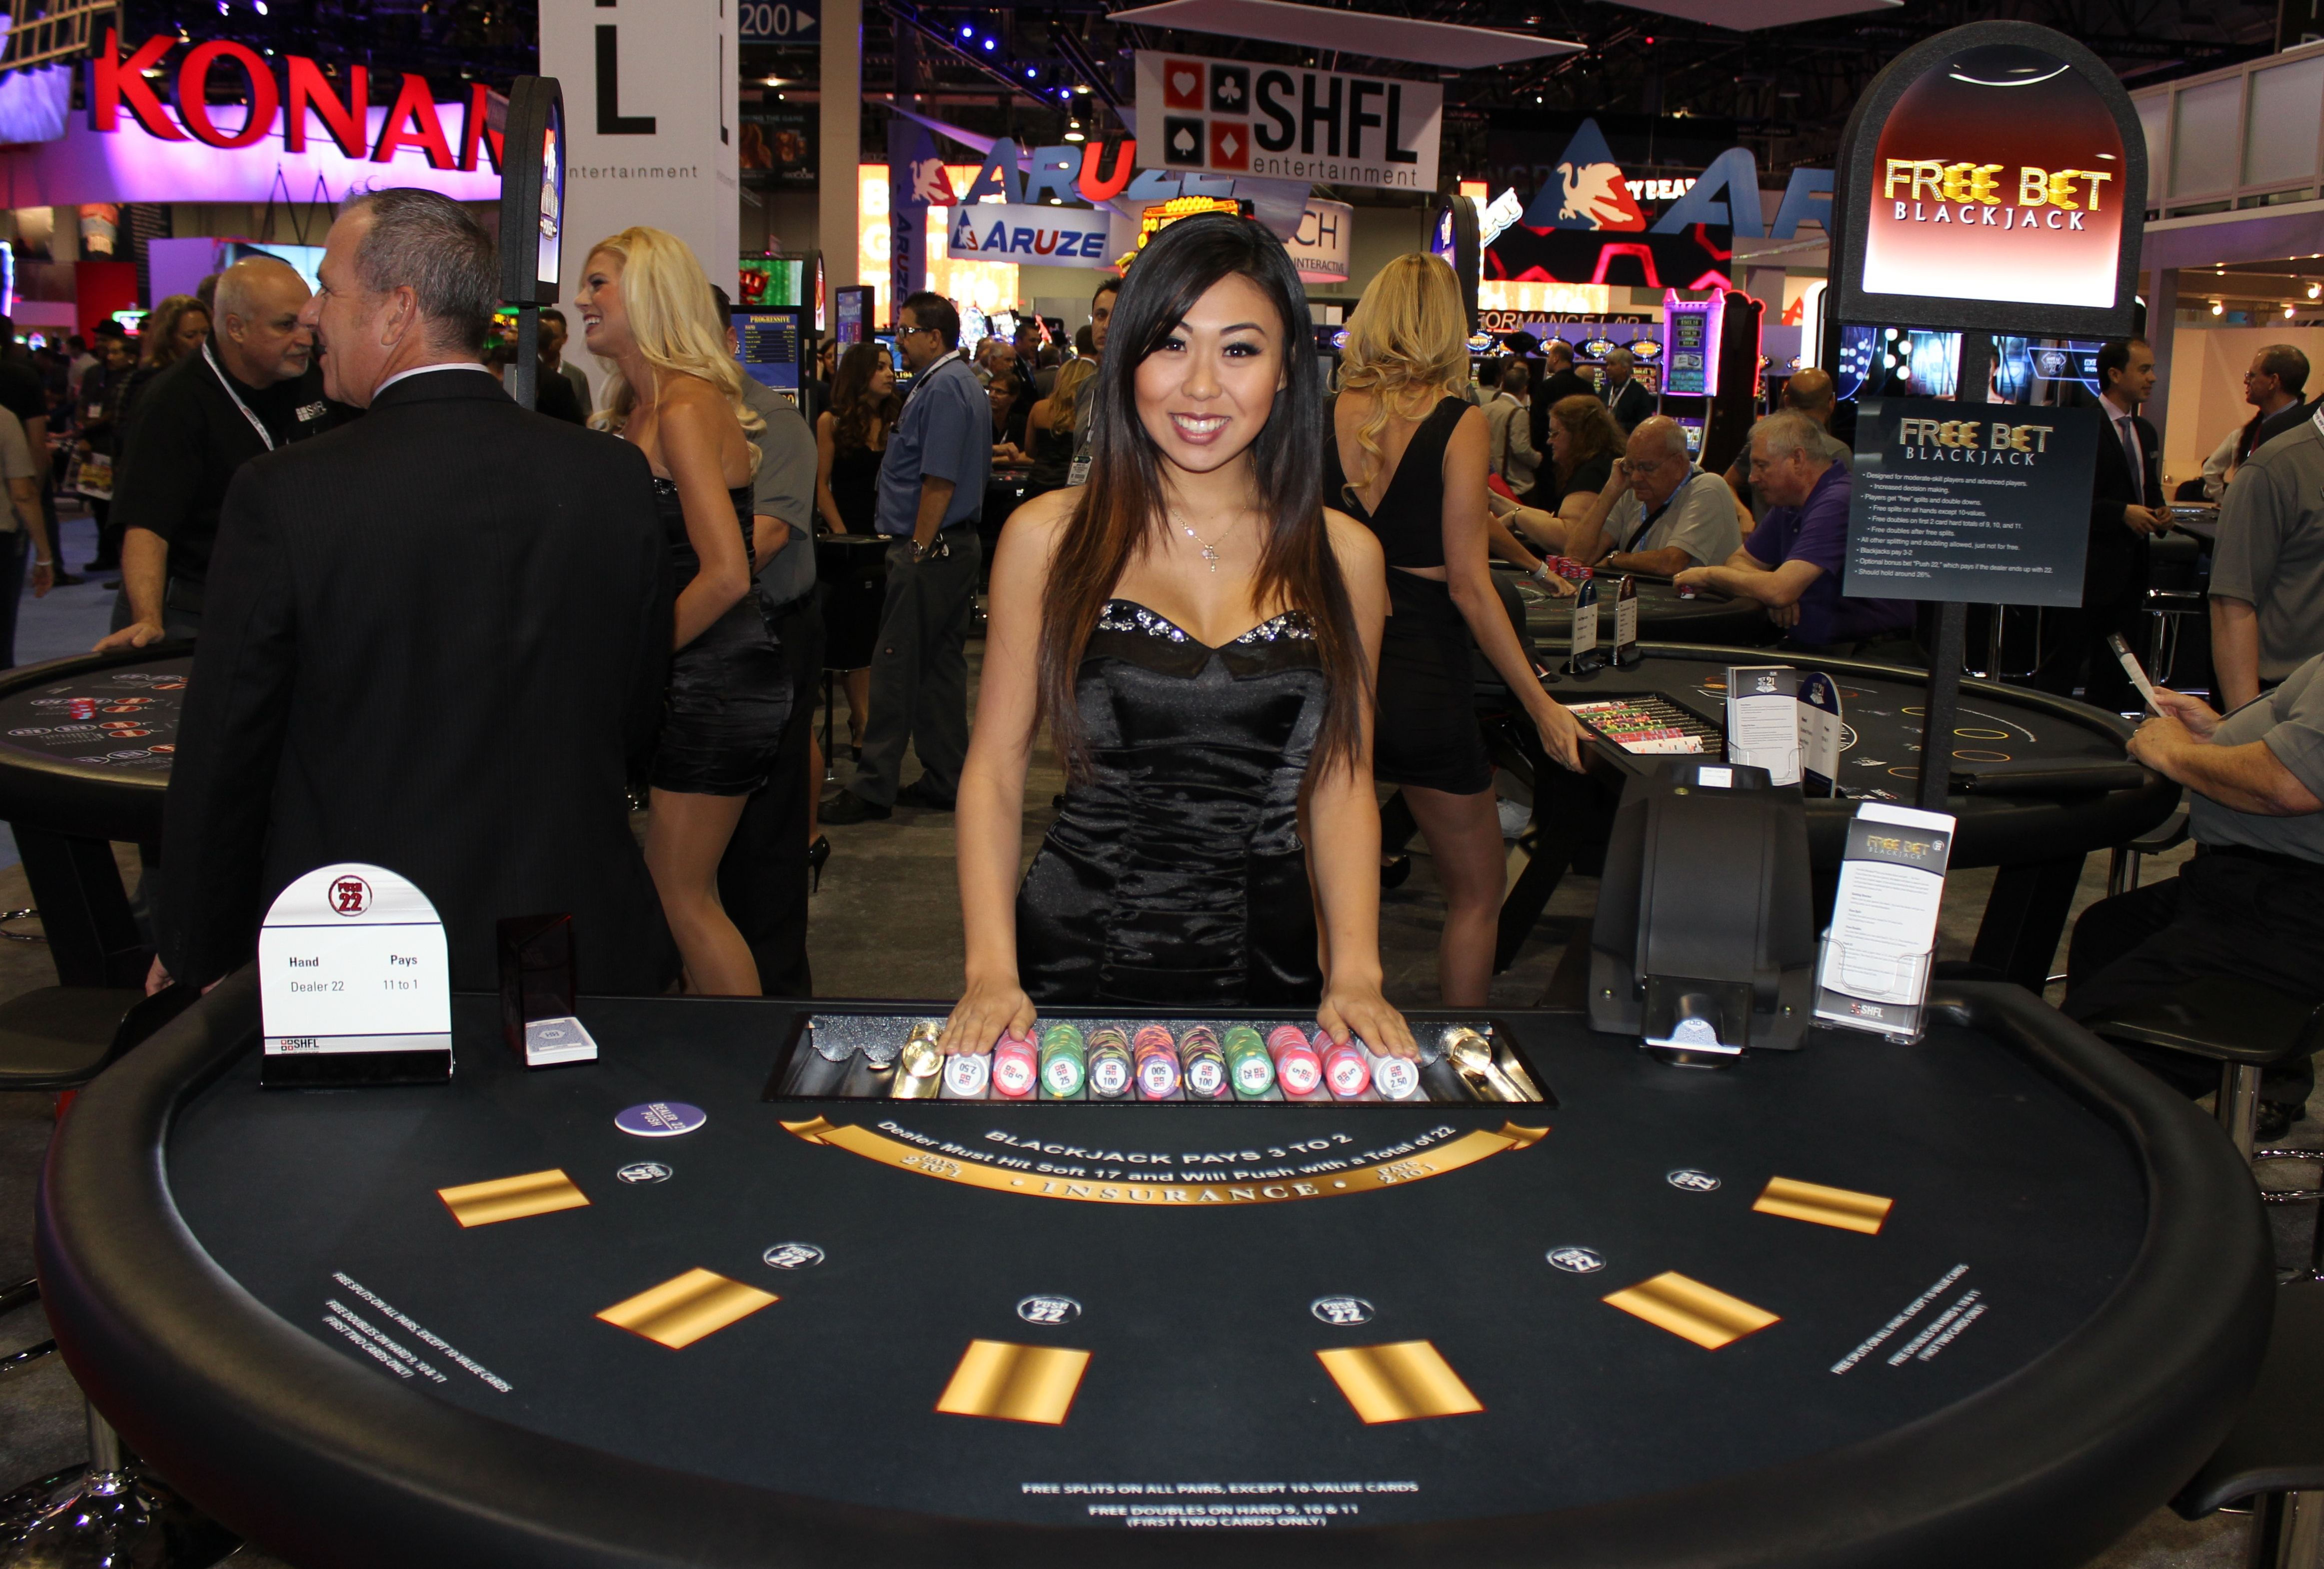 casino black jack odds